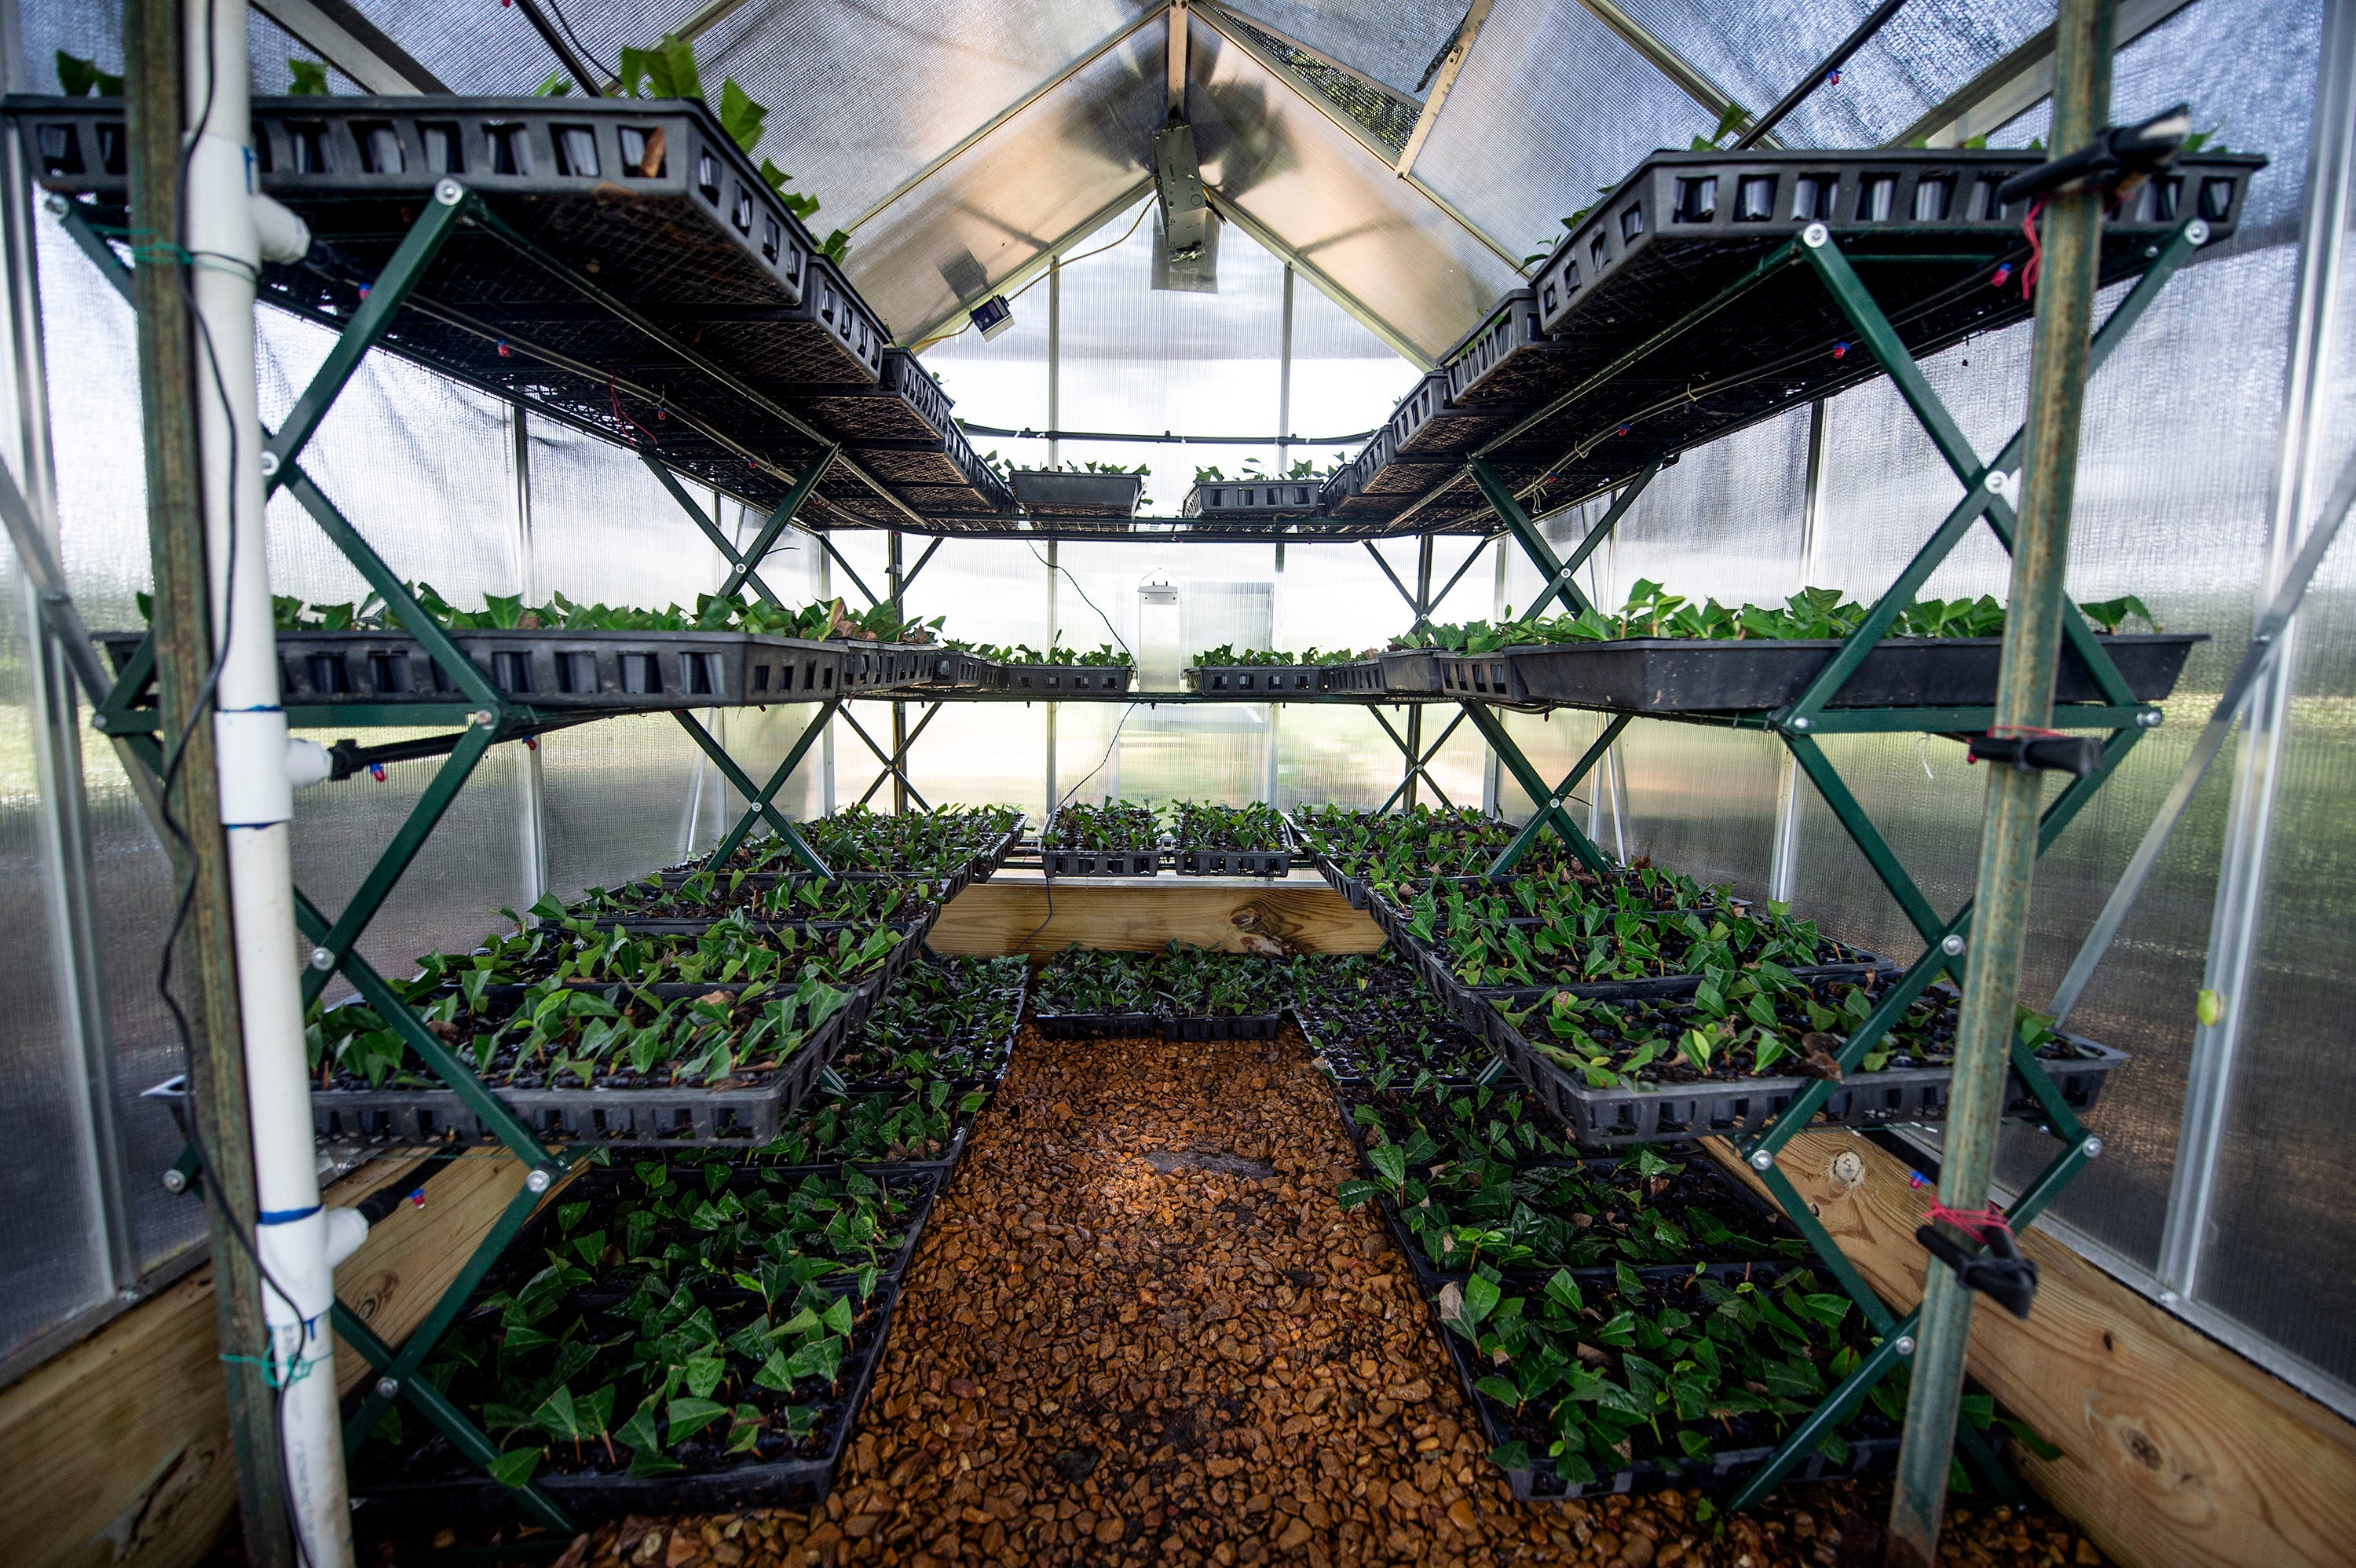 The Great Mississippi Tea Company's nursery is seen here  in Brookhaven, Miss., Thursday, July 29, 2021. The early stages of tea cultivation begins in the nursery.